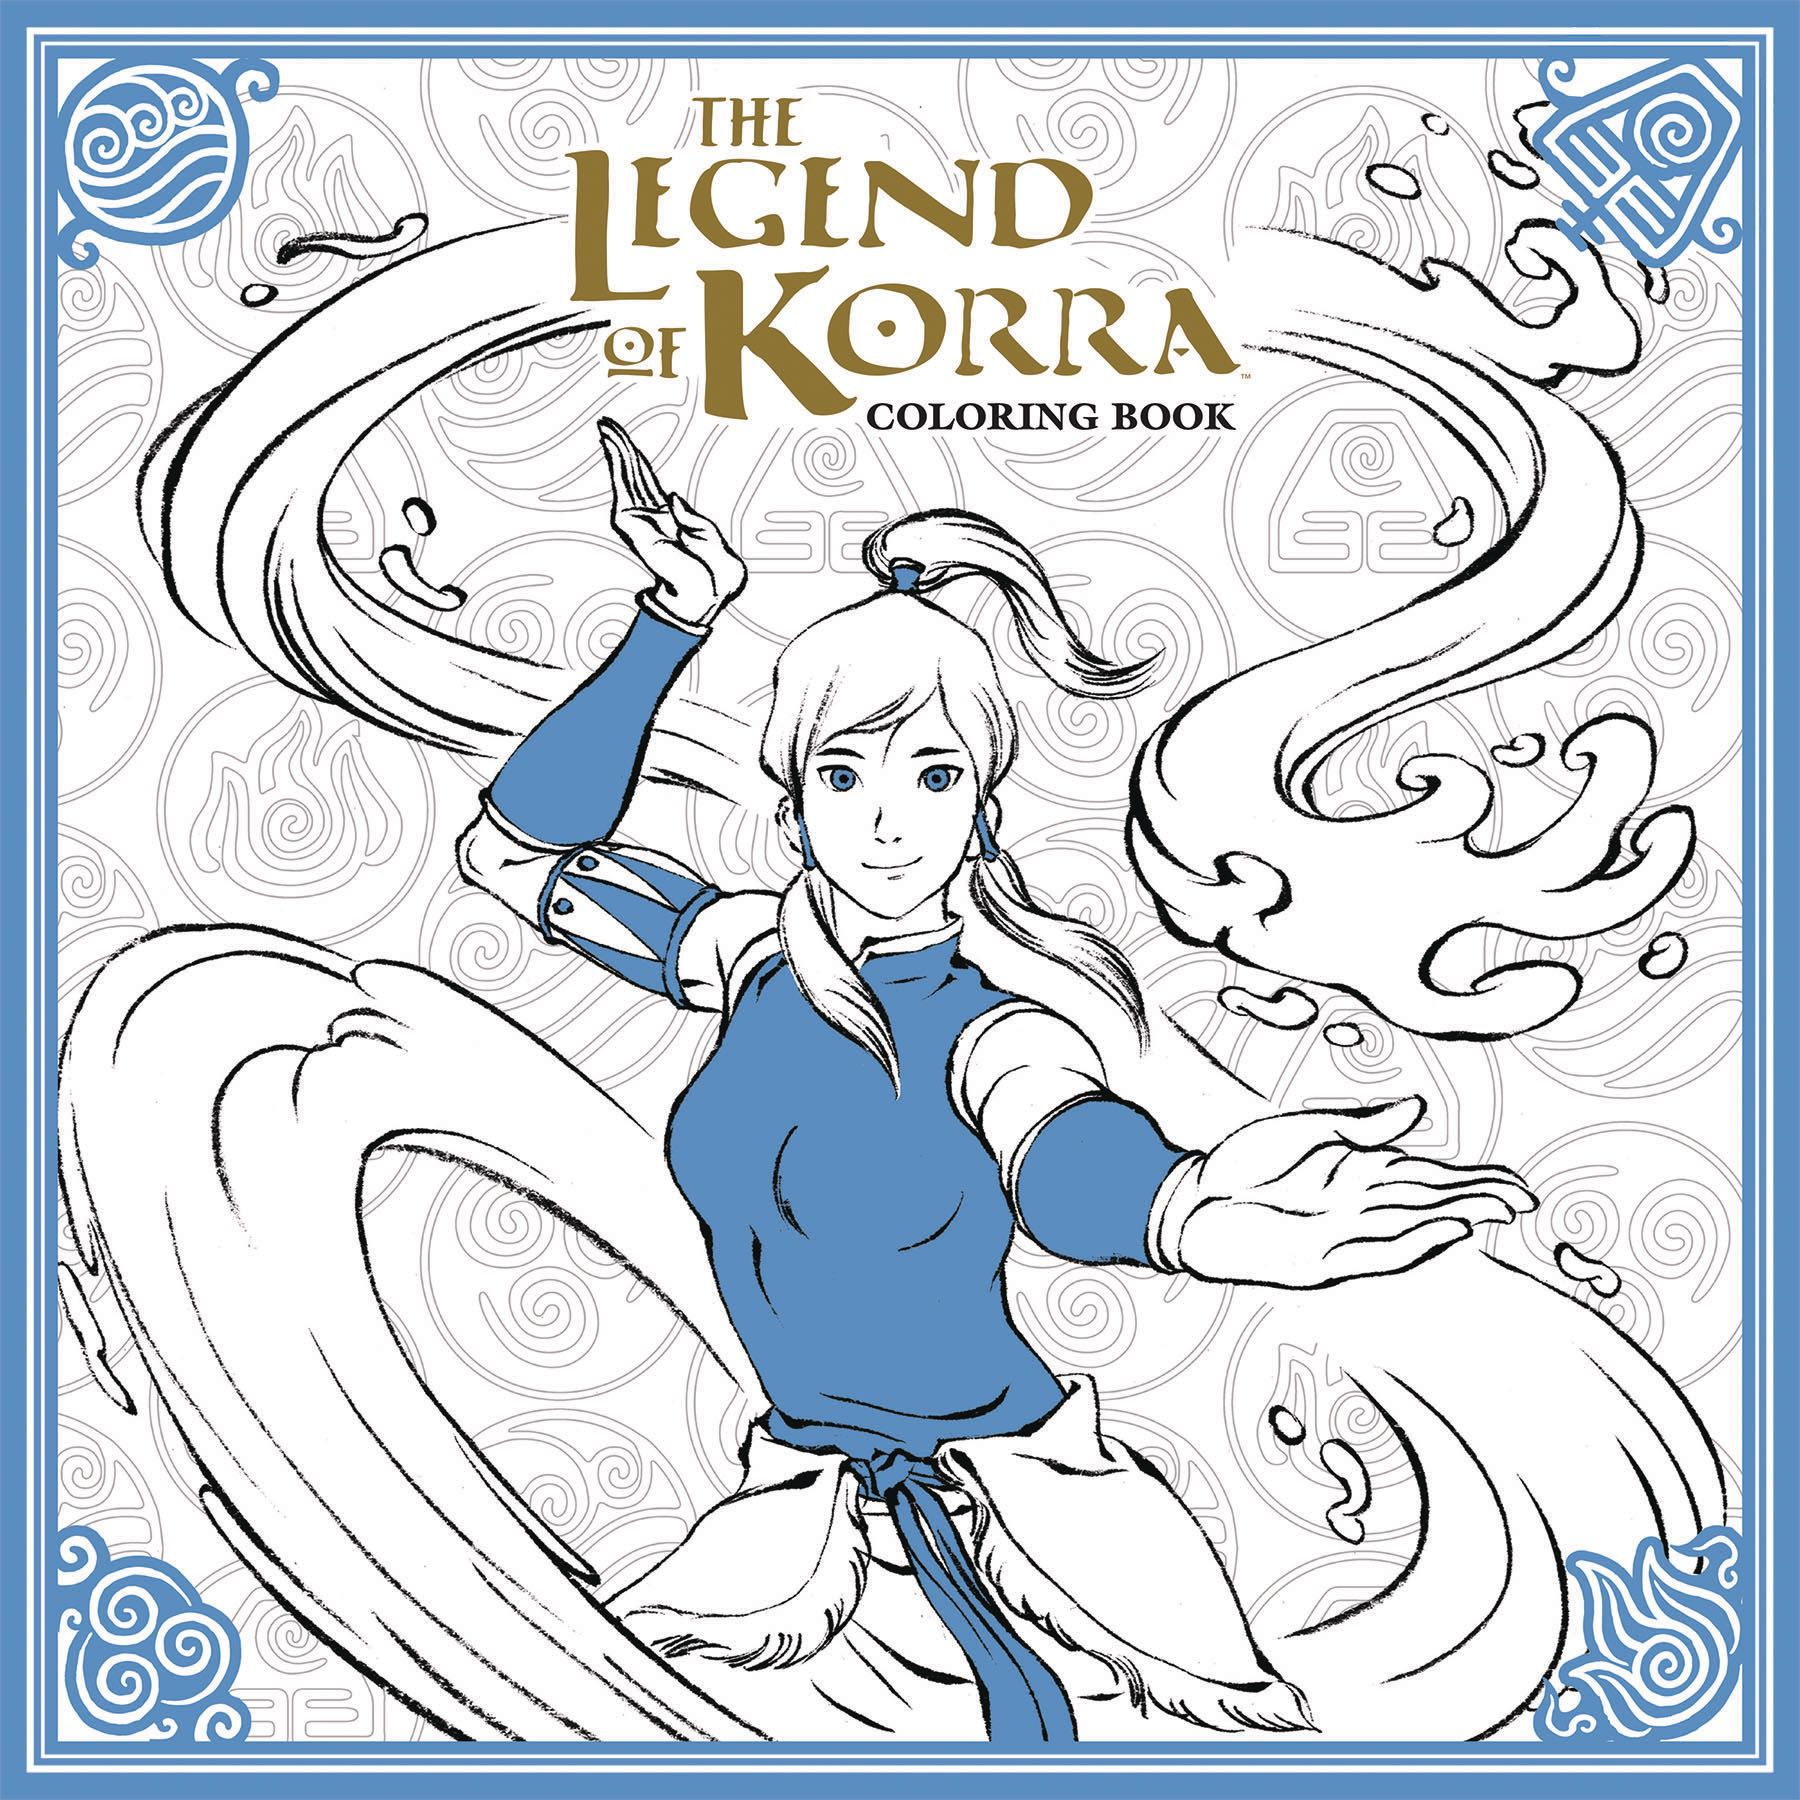 The Legend of Korra Coloring Book | Fresh Comics